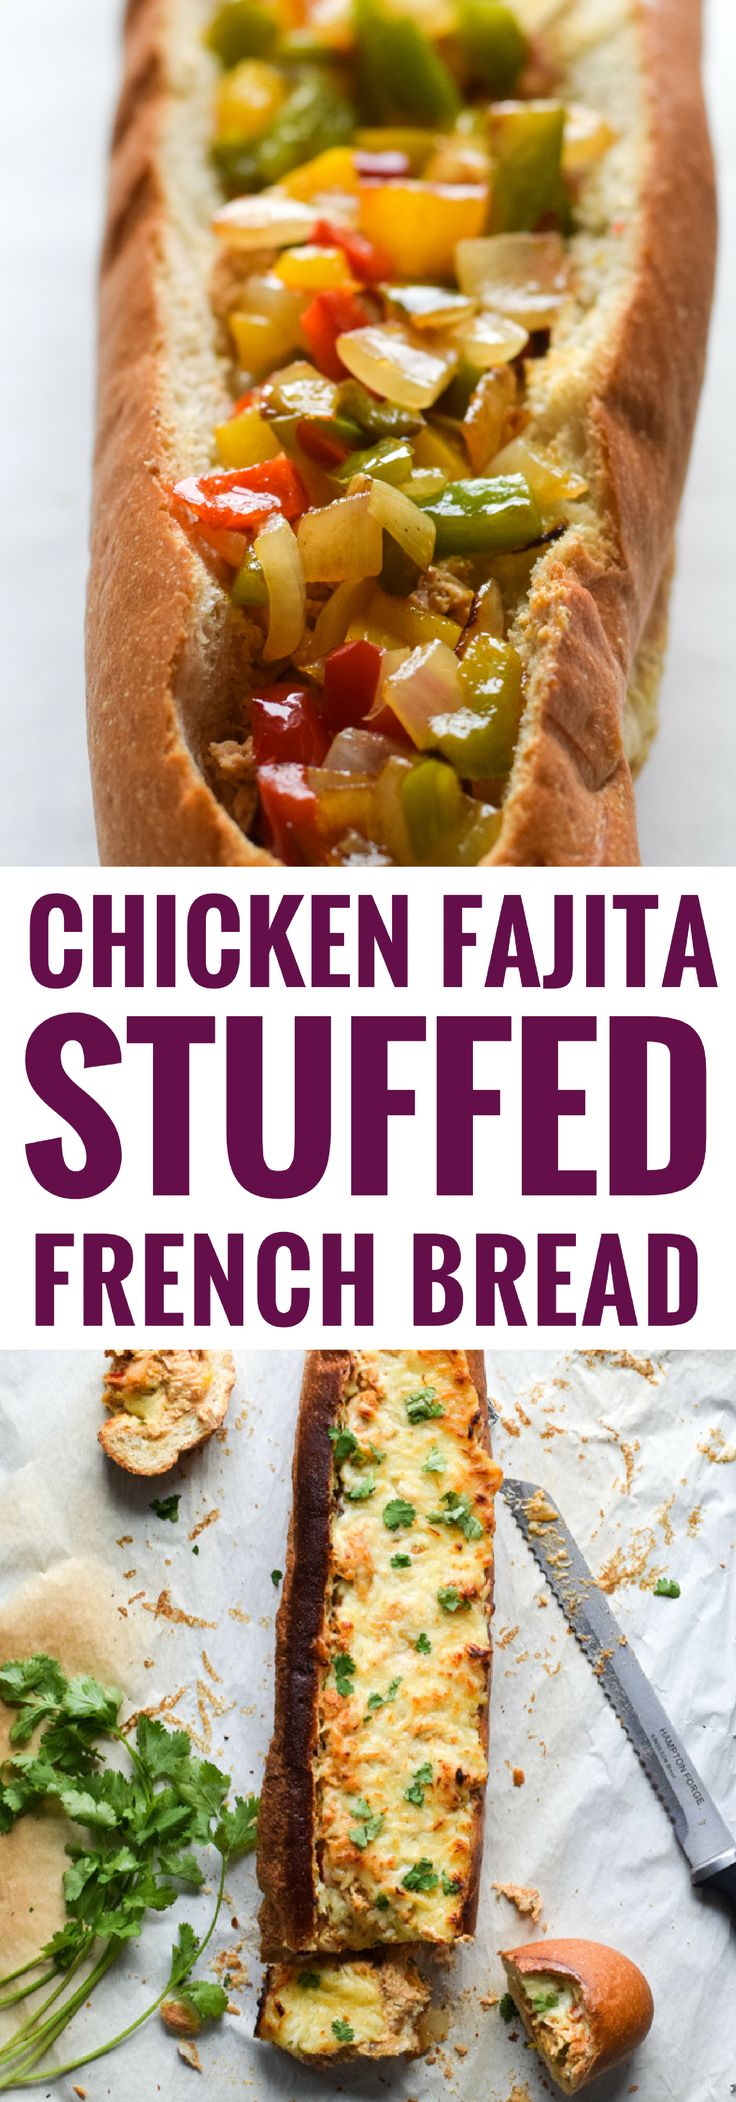 A crowd favorite, this Chicken Fajita Stuffed French Bread is a creamy, cheesy, and super flavorful appetizer that's perfect for parties and game day! via @isabeleats